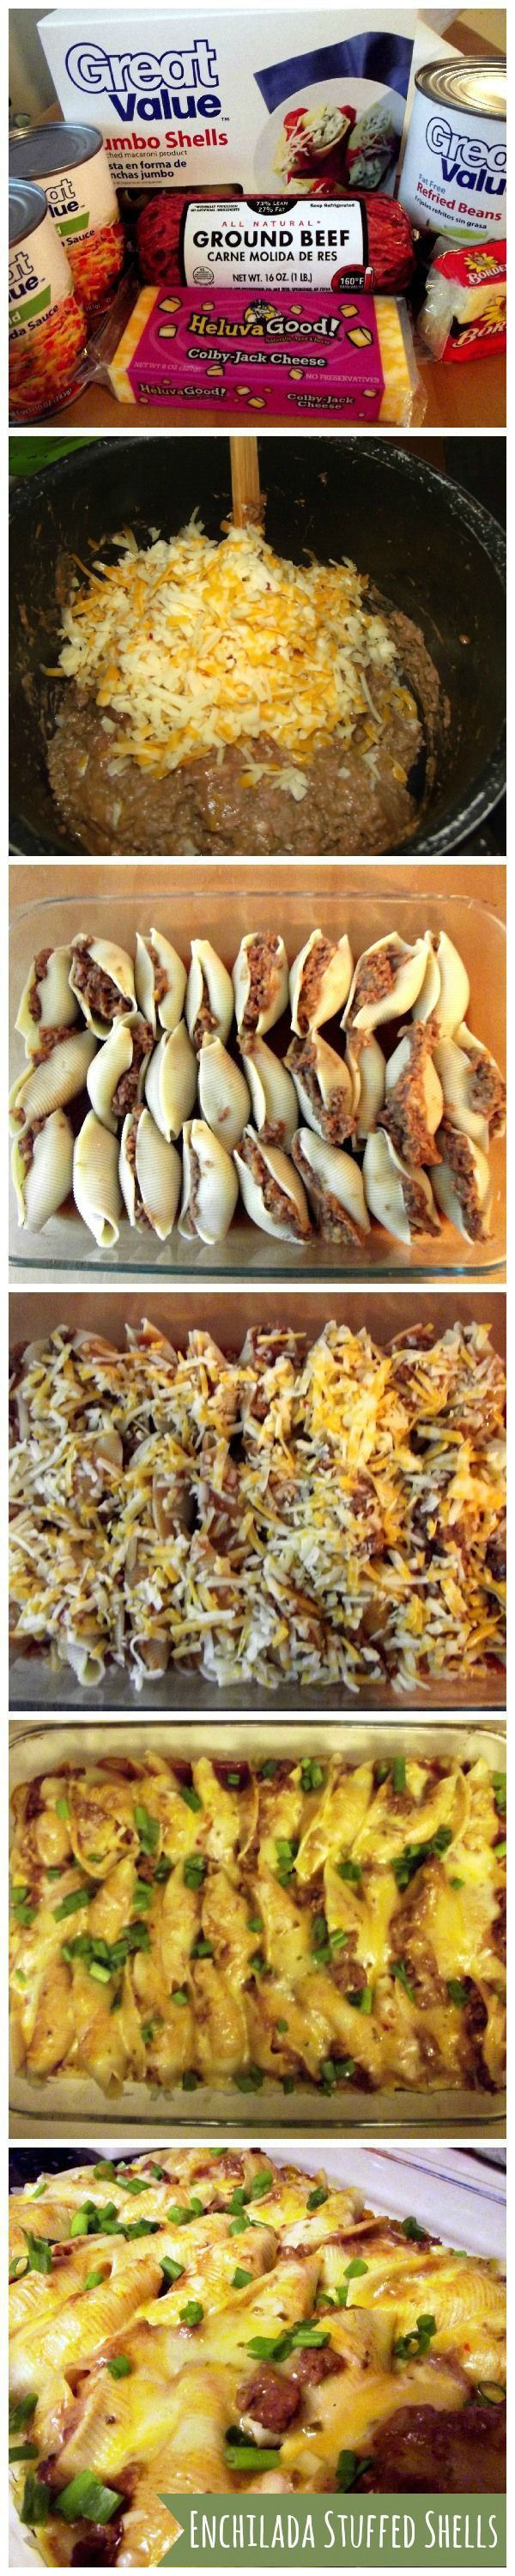 Enchilada Stuffed Shells My most popular recipe for good reason!  These are amazing and a real crowd pleaser!